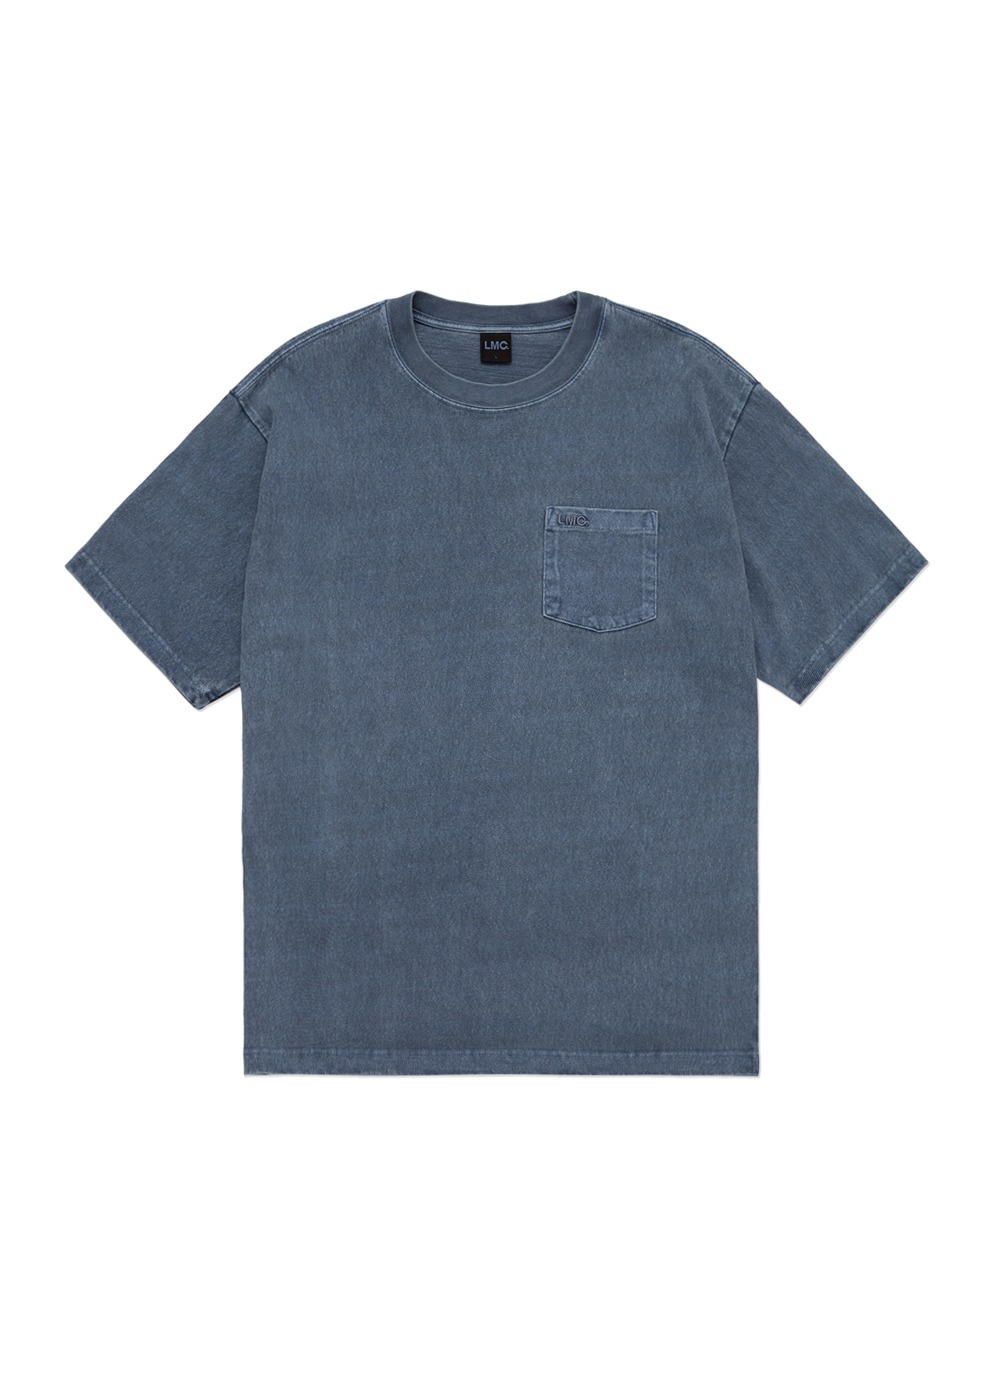 LMC OVERDYED OG POCKET TEE navy